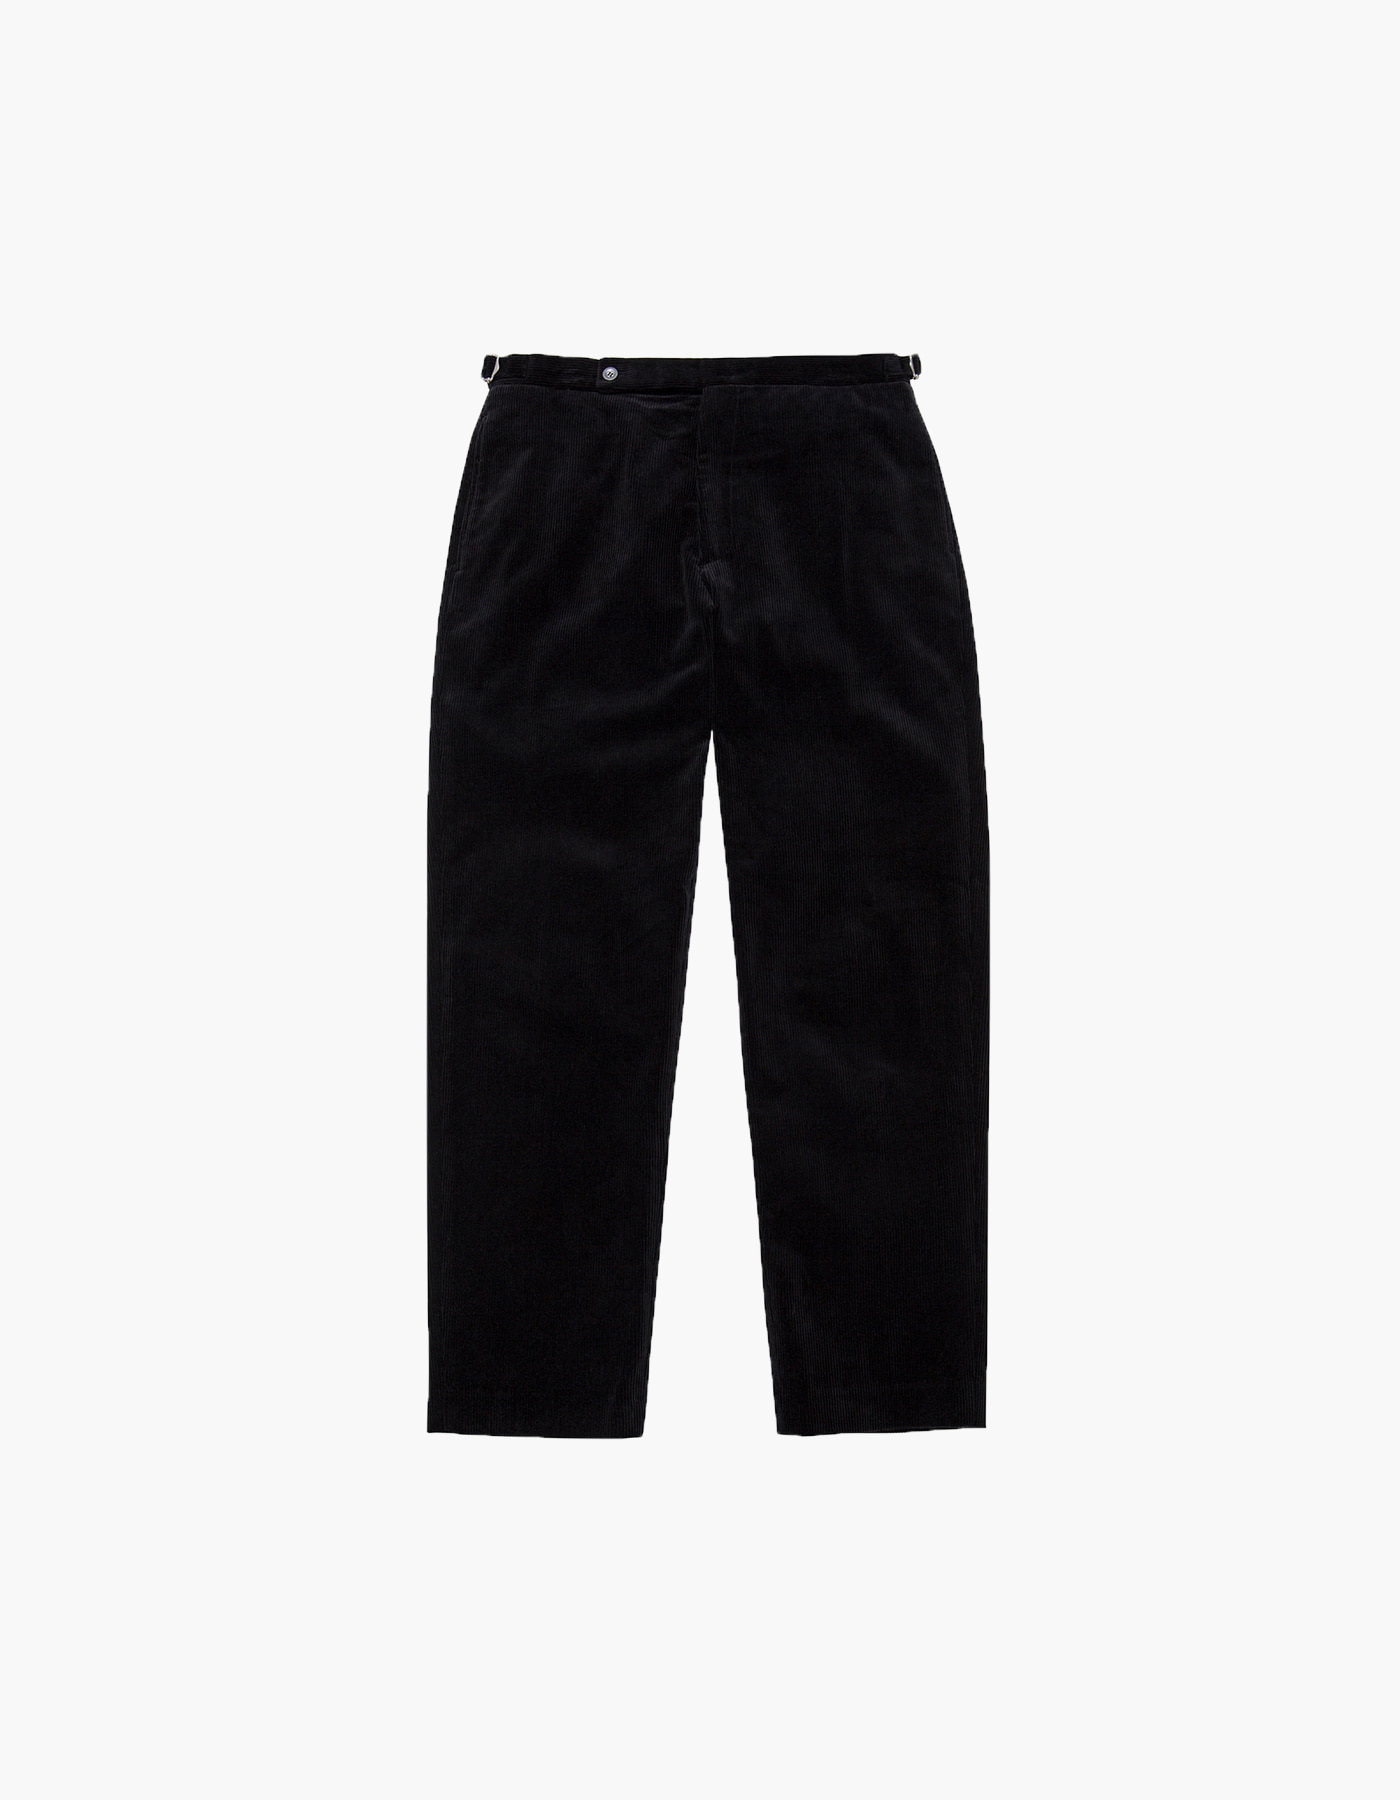 CORDUROY IVY PANTS II / BLACK